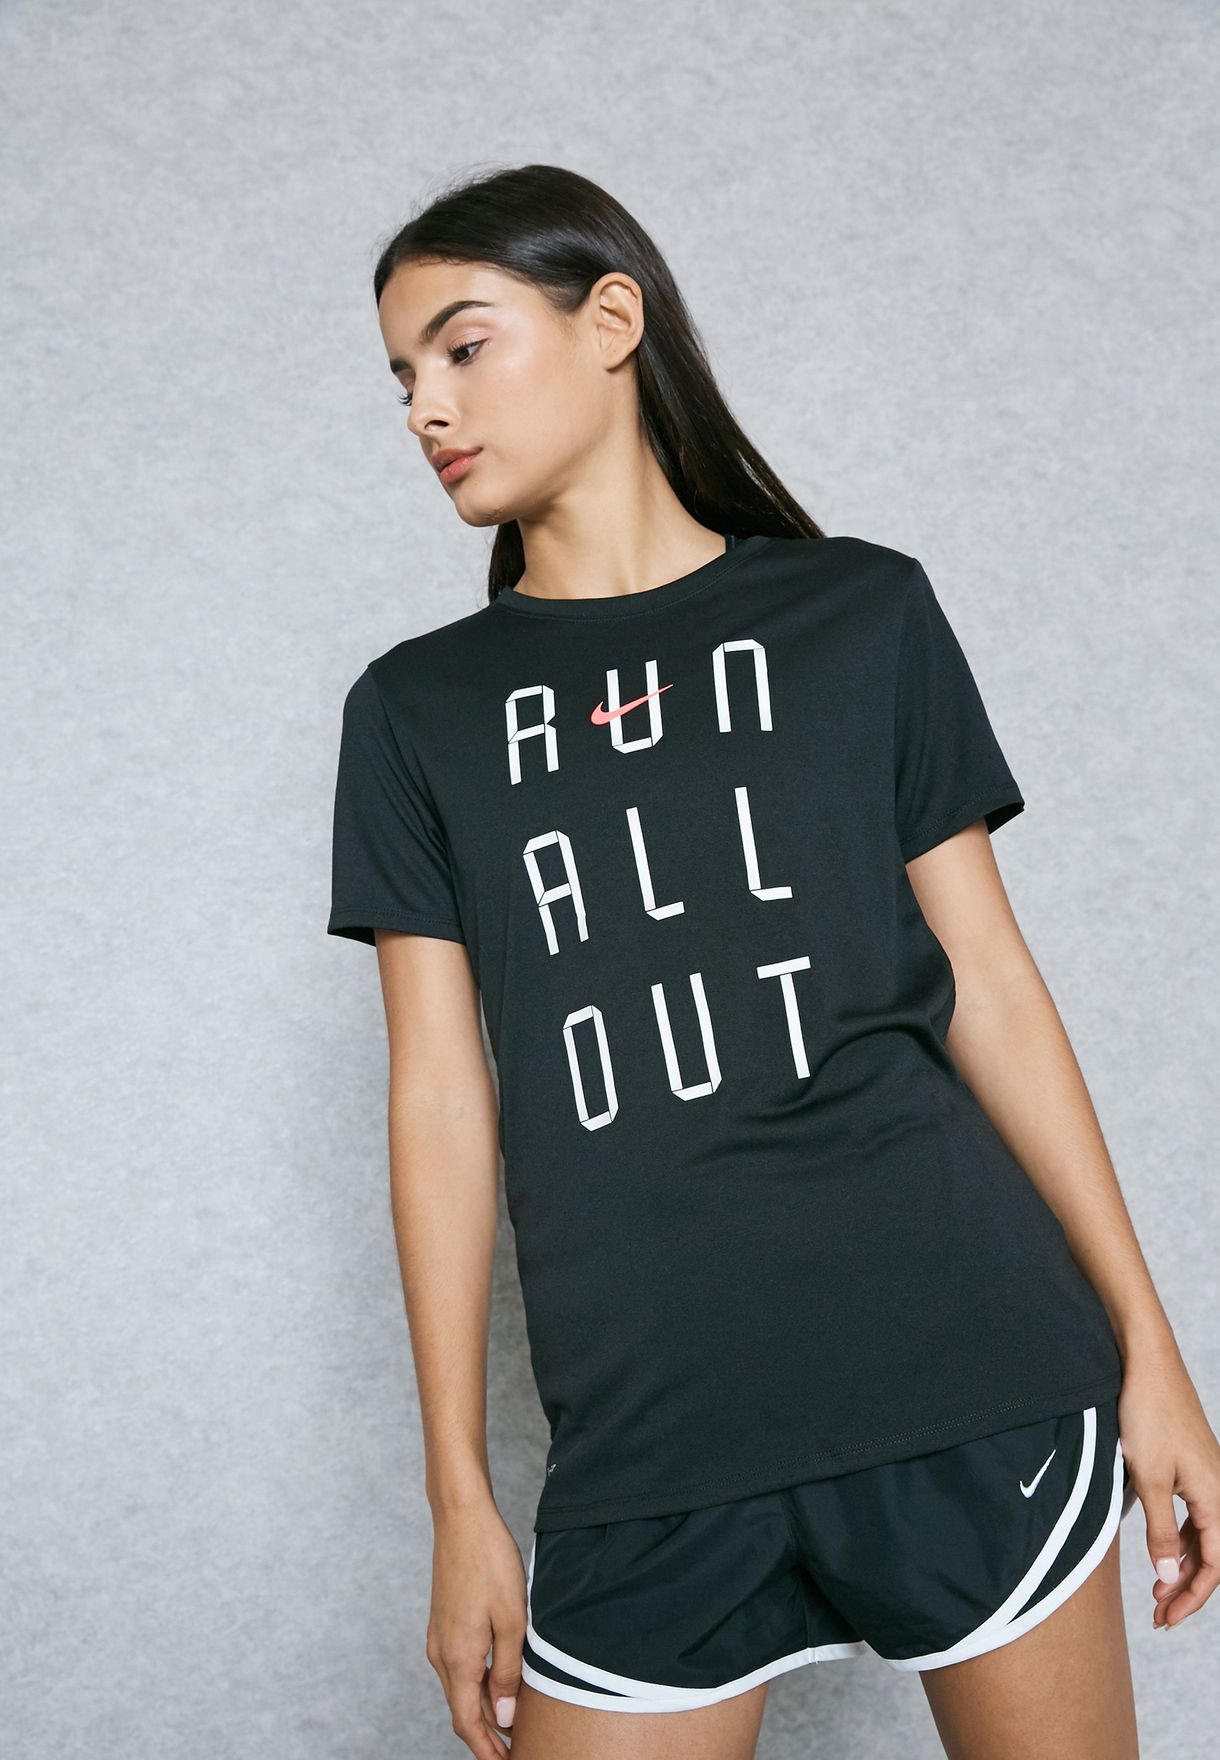 bf07475f Shop Nike black Dri-FIT Run All Out T-Shirt 831915-010 for Women in ...